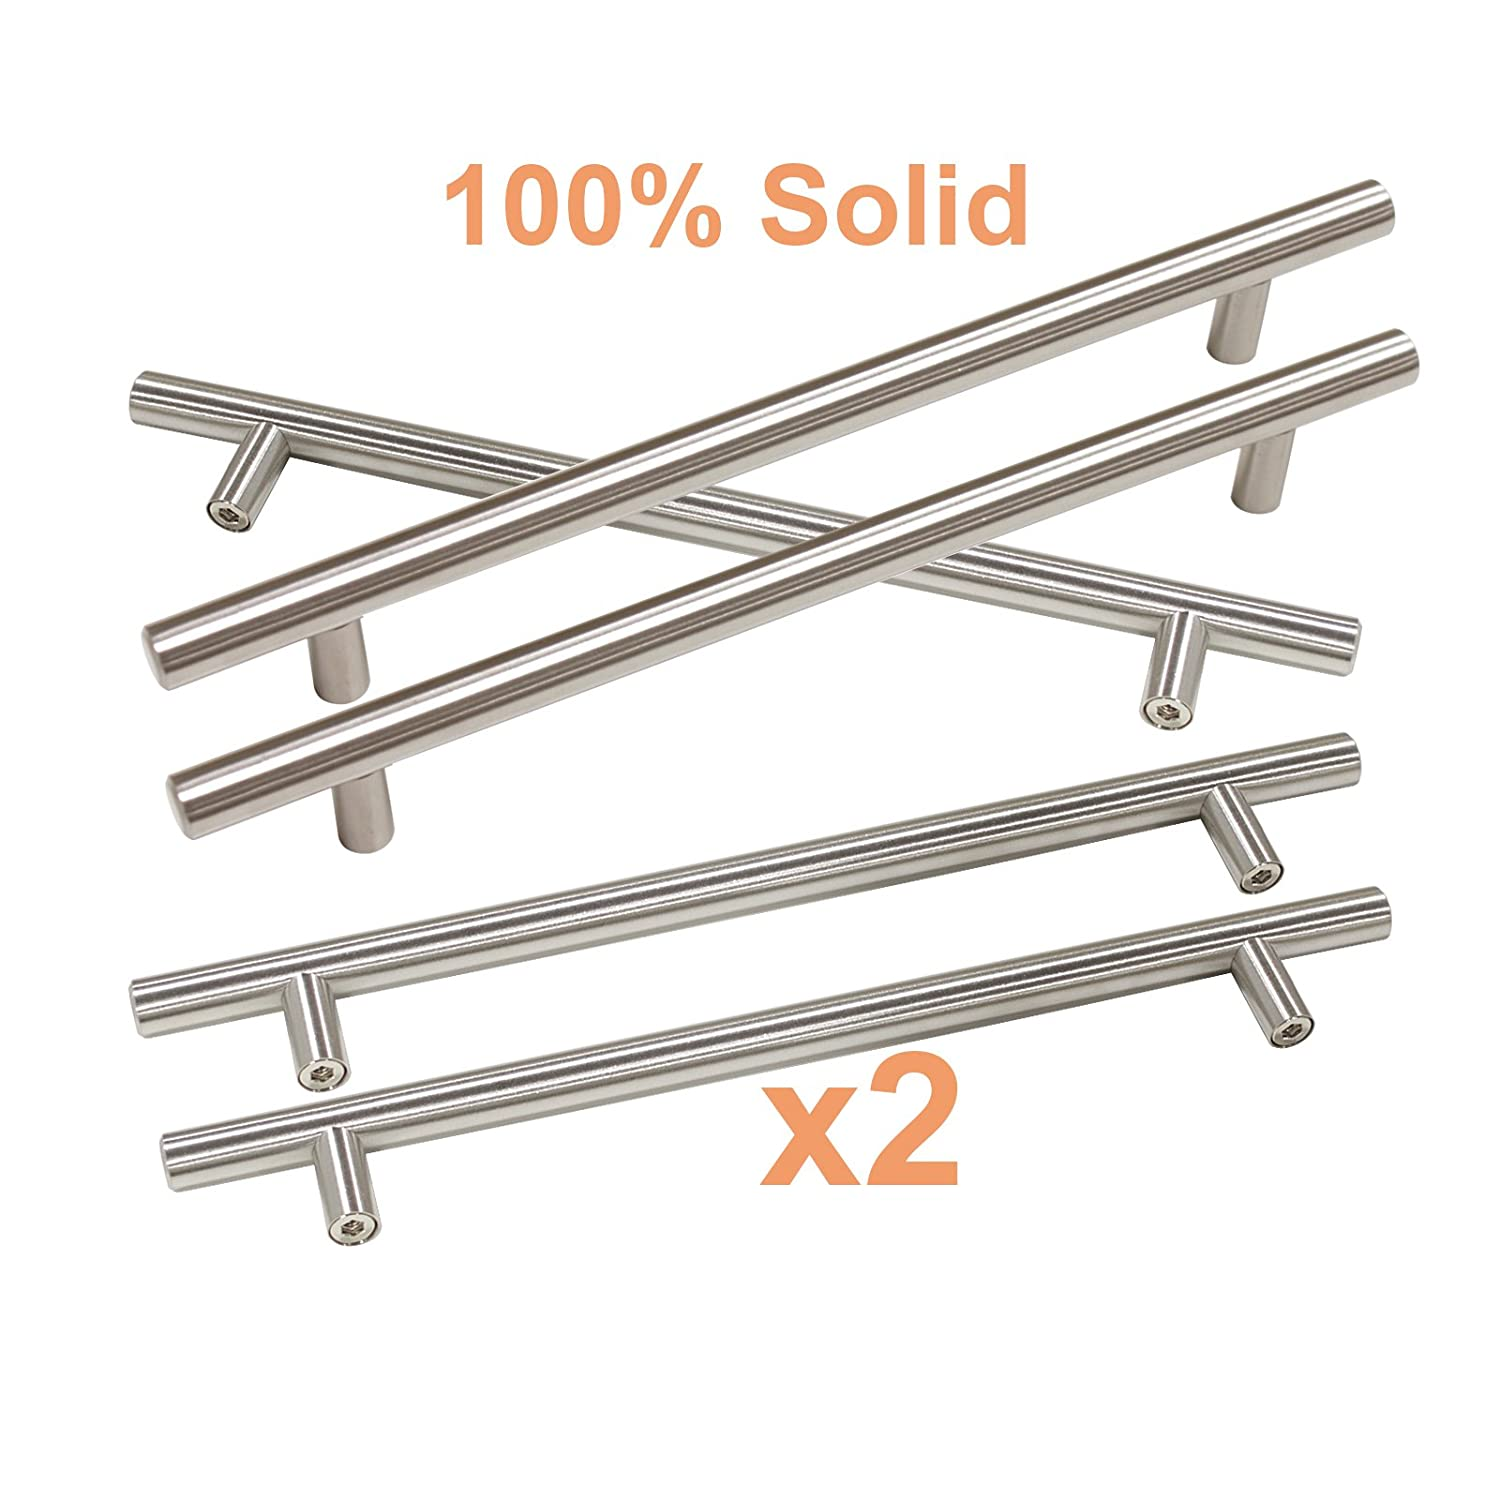 Hole Centers Satin Nickel Drawer Cabinet Wardrobe Kitchen Handles Pulls Gobrico Hollow T Bar 3-3//4 96mm 6 Overall Length-Pack of 10 6 Overall Length-Pack of 10